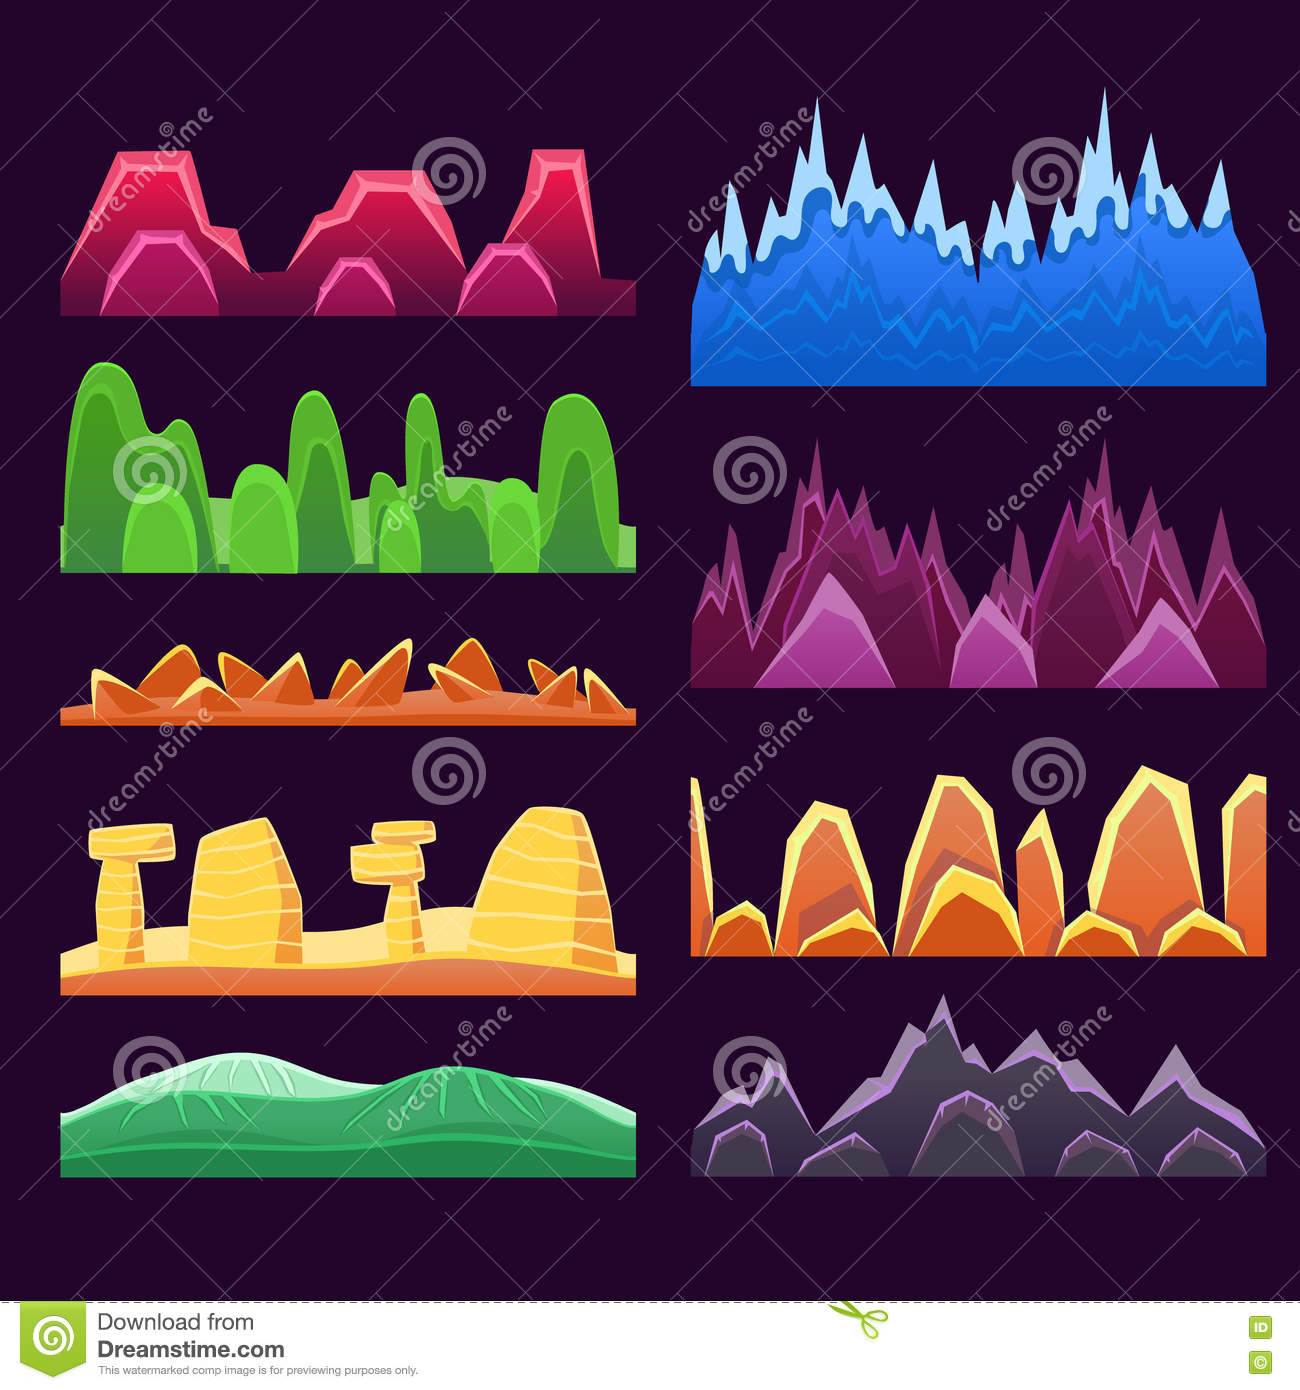 Alien Mountains And Colorful Desert Landscaping Seamless Background Patterns For 2D Platformer Game Design